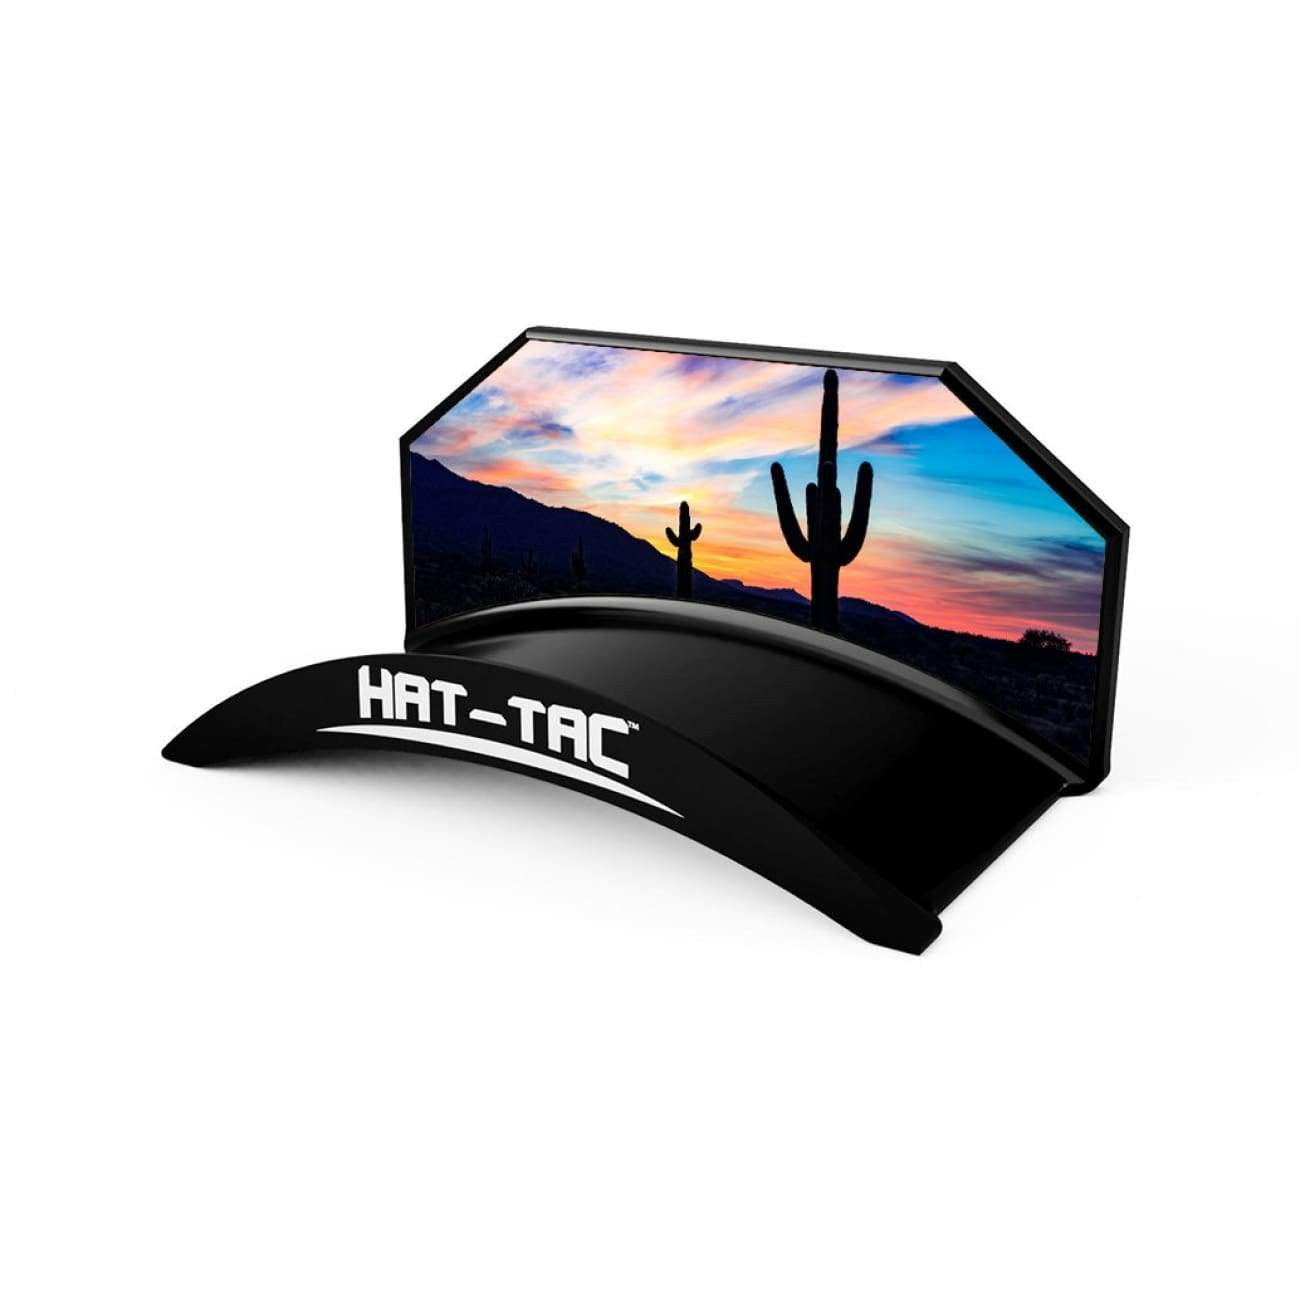 Landscape Collection  Cactus Night / Pack of 4 hat-tac.myshopify.com